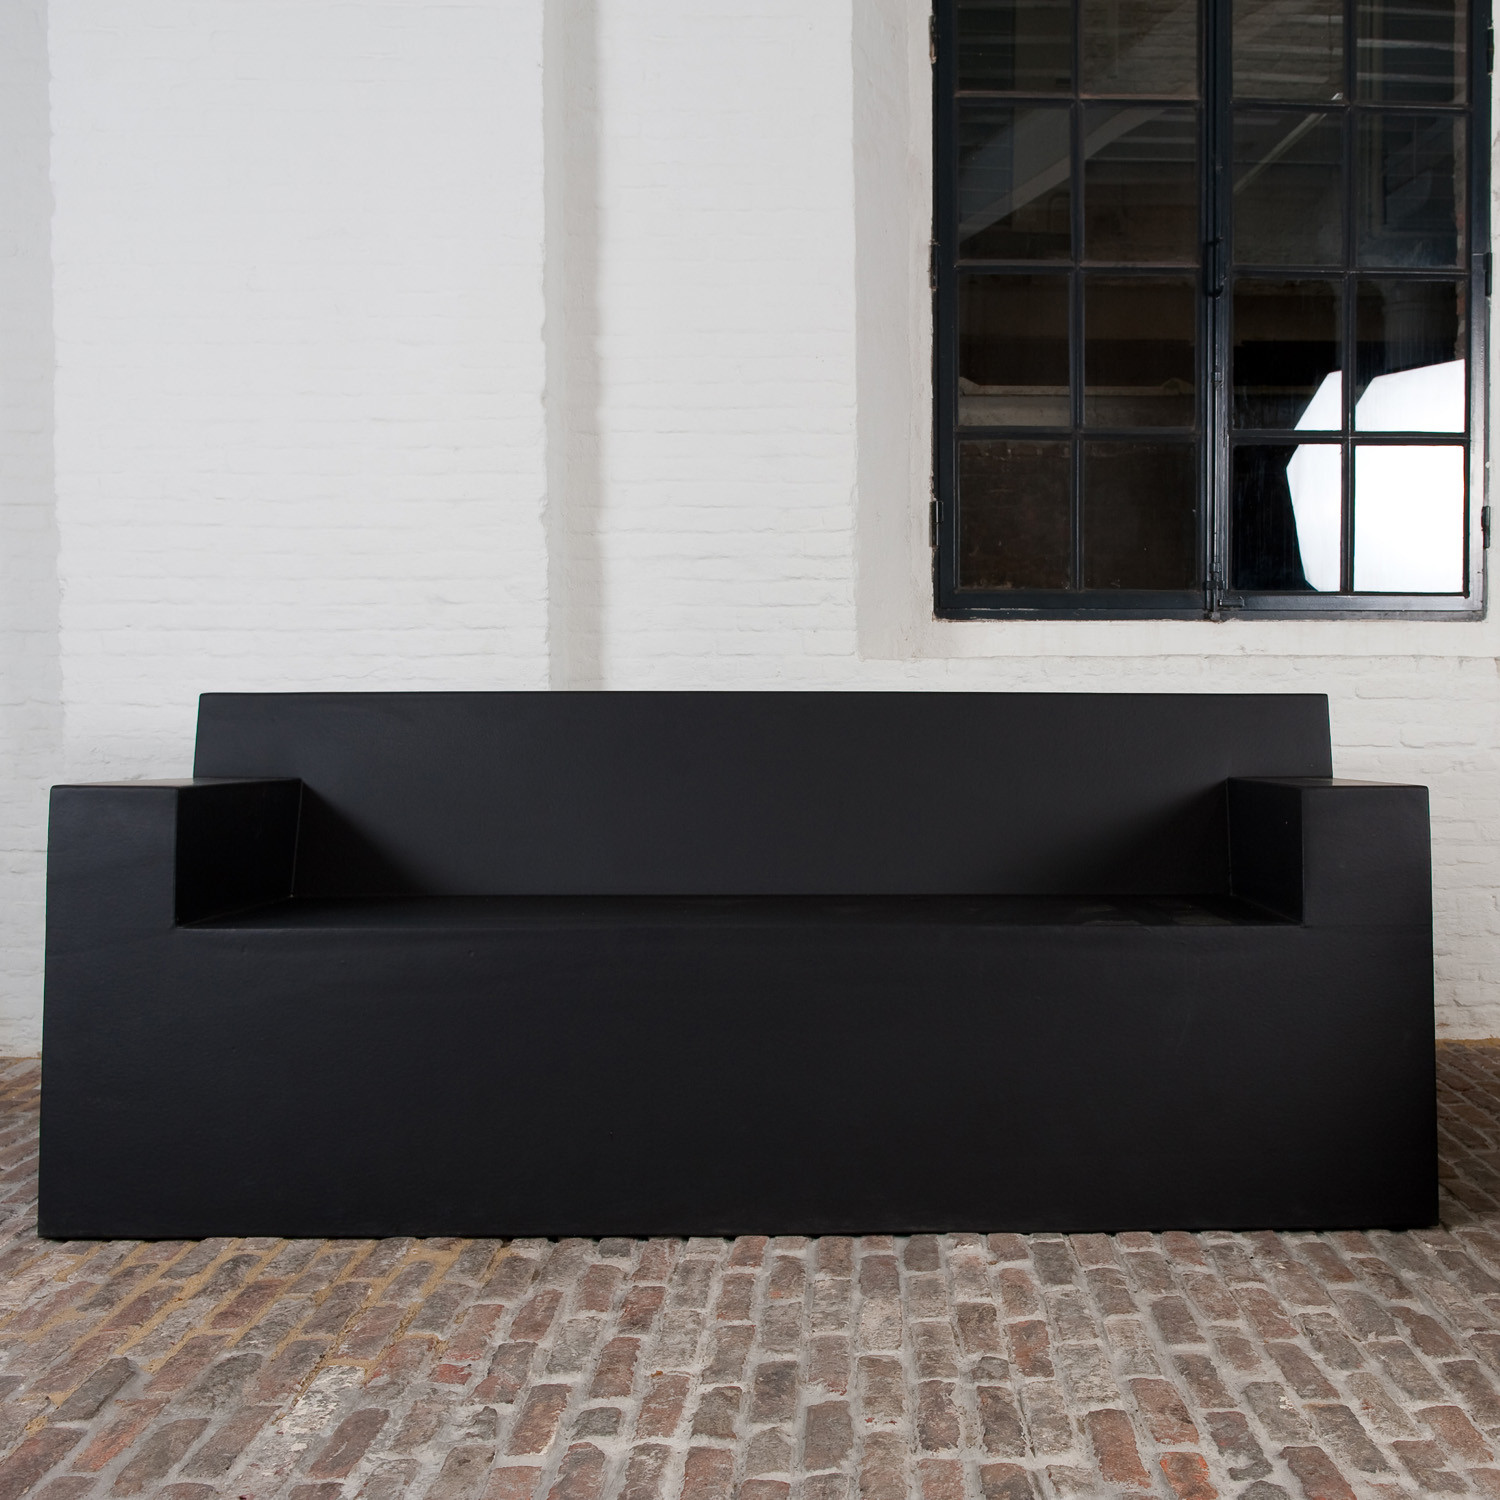 SixInch Sofa